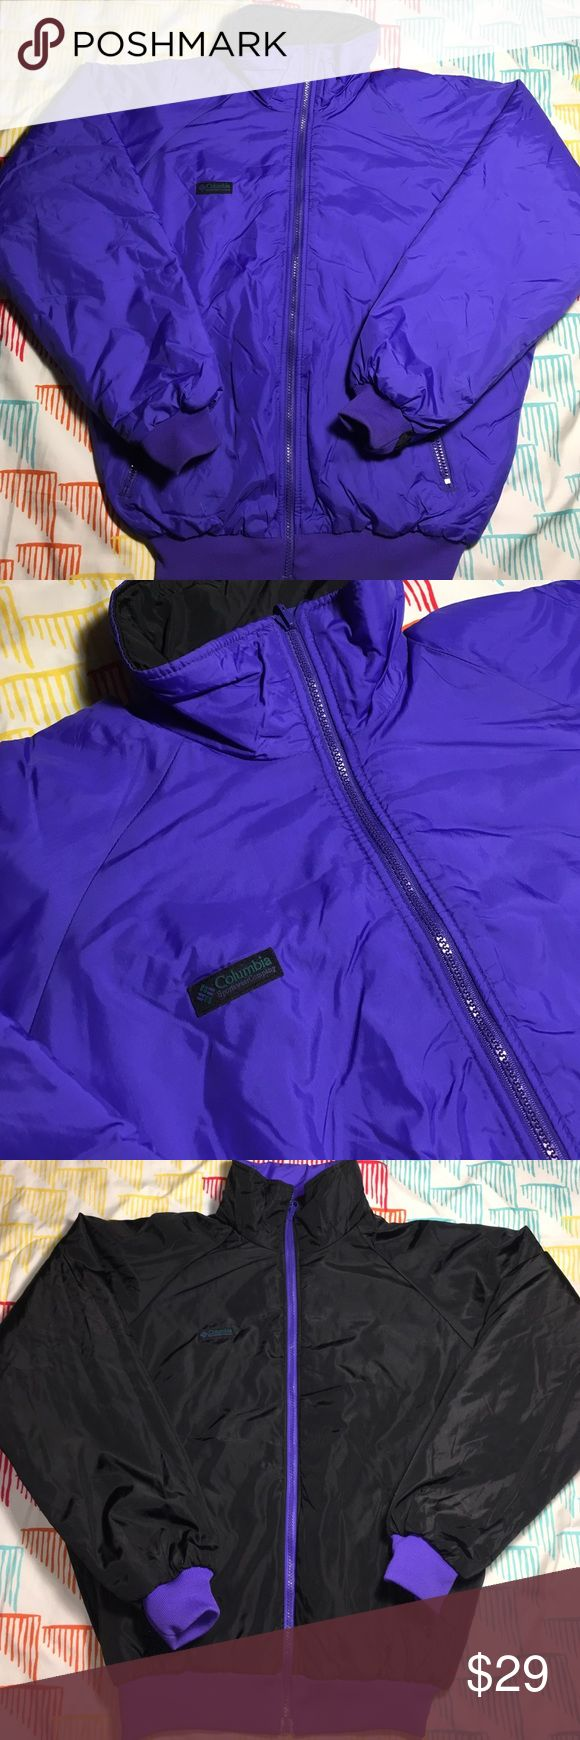 Columbia Sportswear Reversible Down Ski Jacket Size Around medium (size tag not attached )  - Condition 9.5/10 Columbia Jackets & Coats